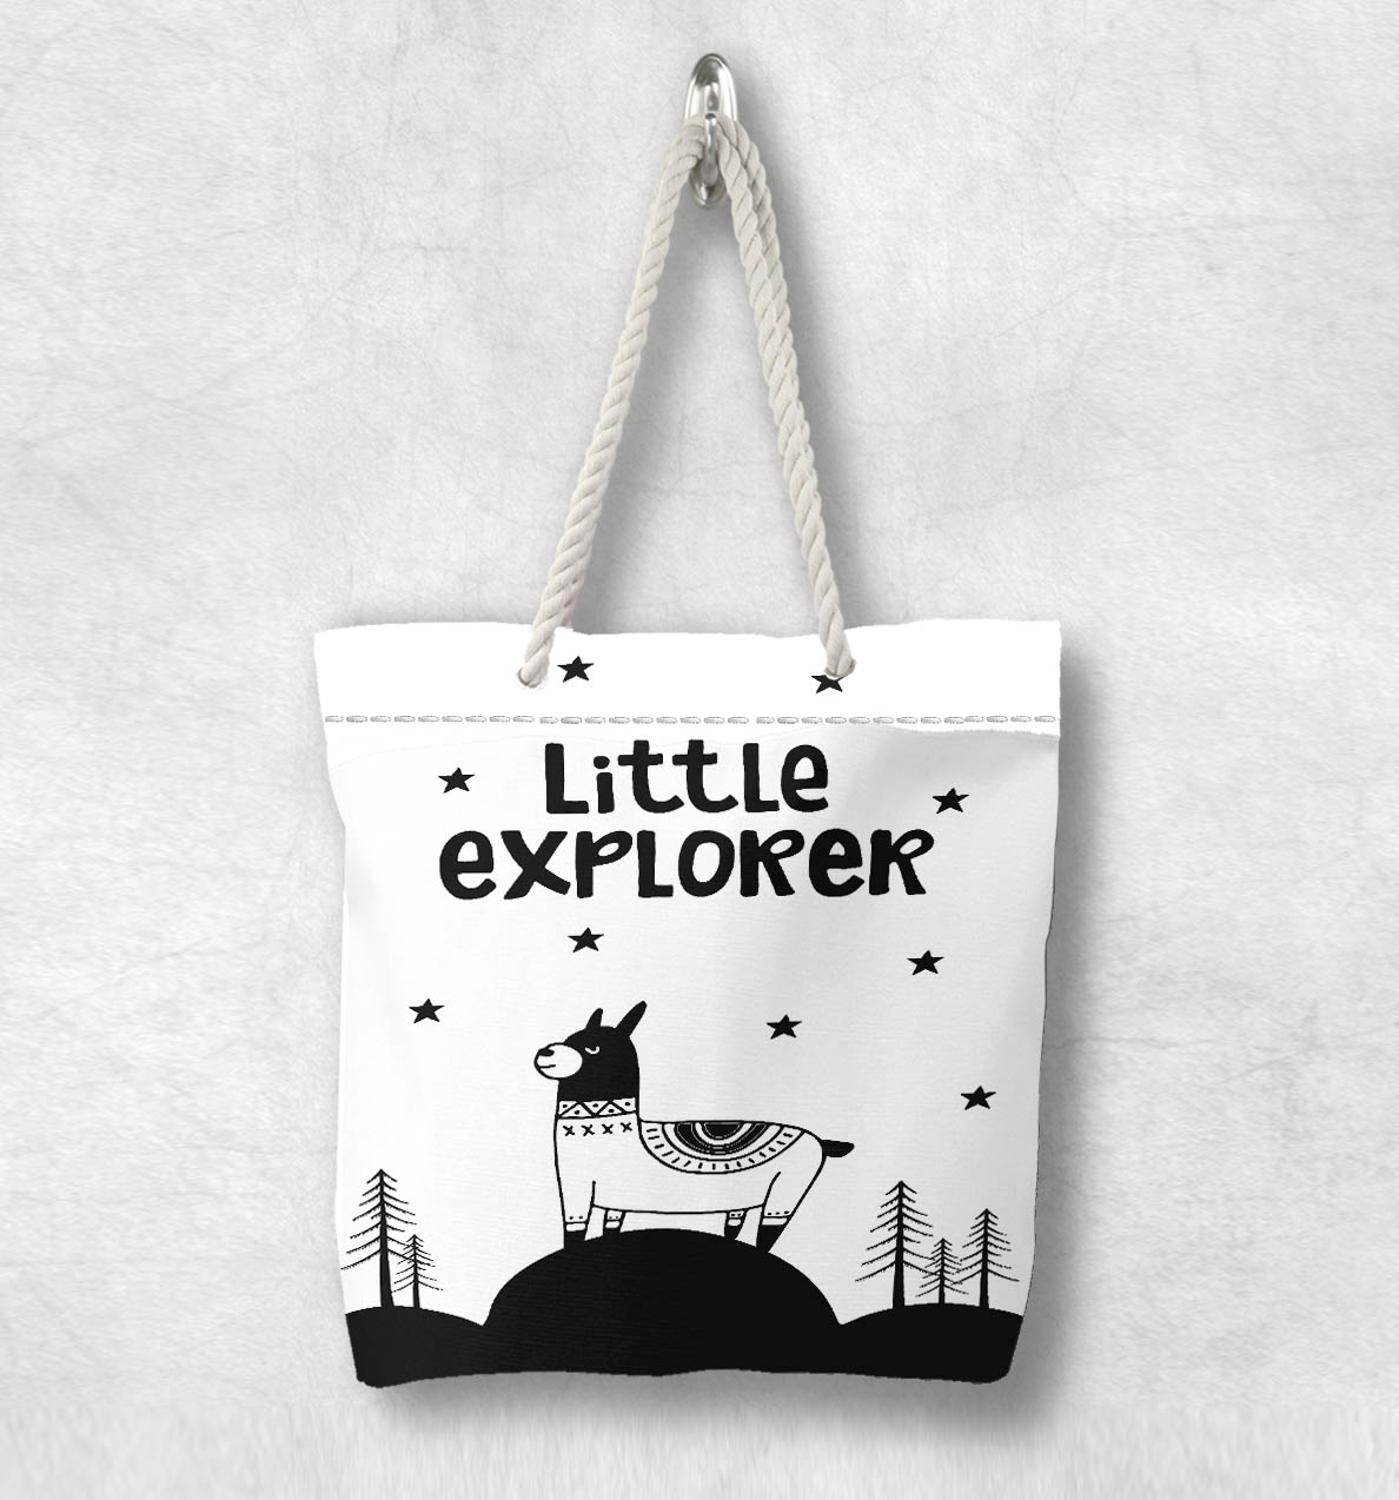 Else Black White Lama Little Explorer Scandinavian White Rope Handle Canvas Bag  Cartoon Print Zippered Tote Bag Shoulder Bag